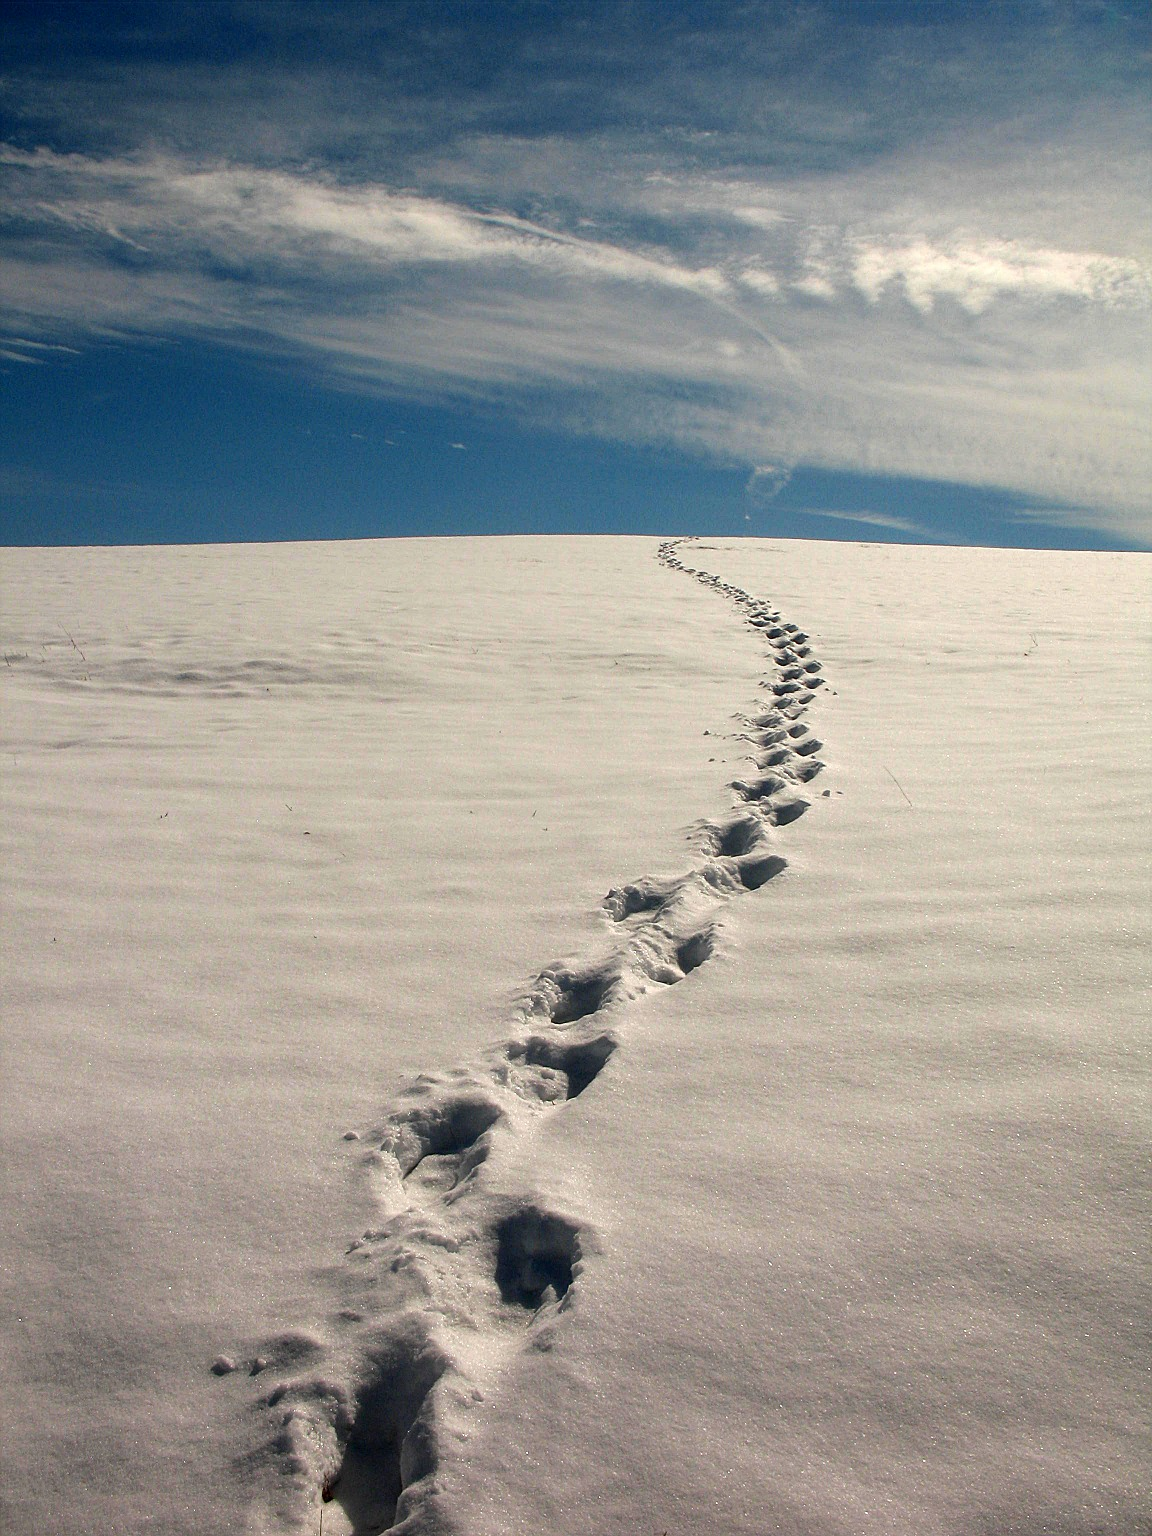 Our Own Set of Footprints - 7 Days Time